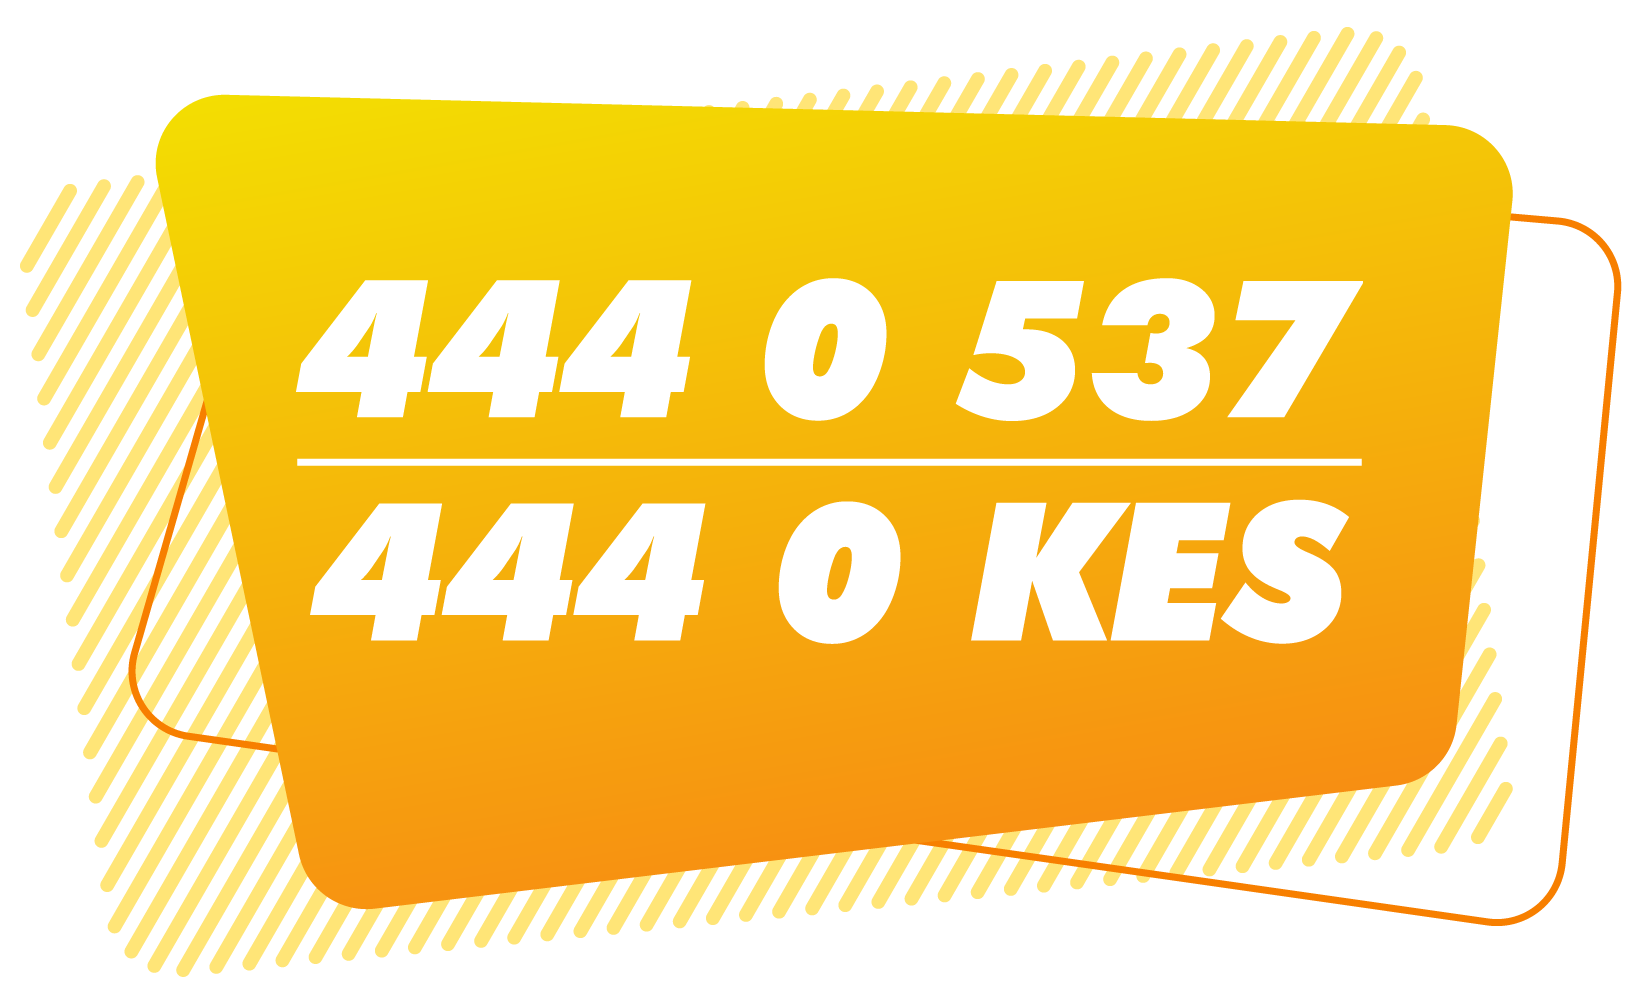 Our Phone Number Has Been Changed